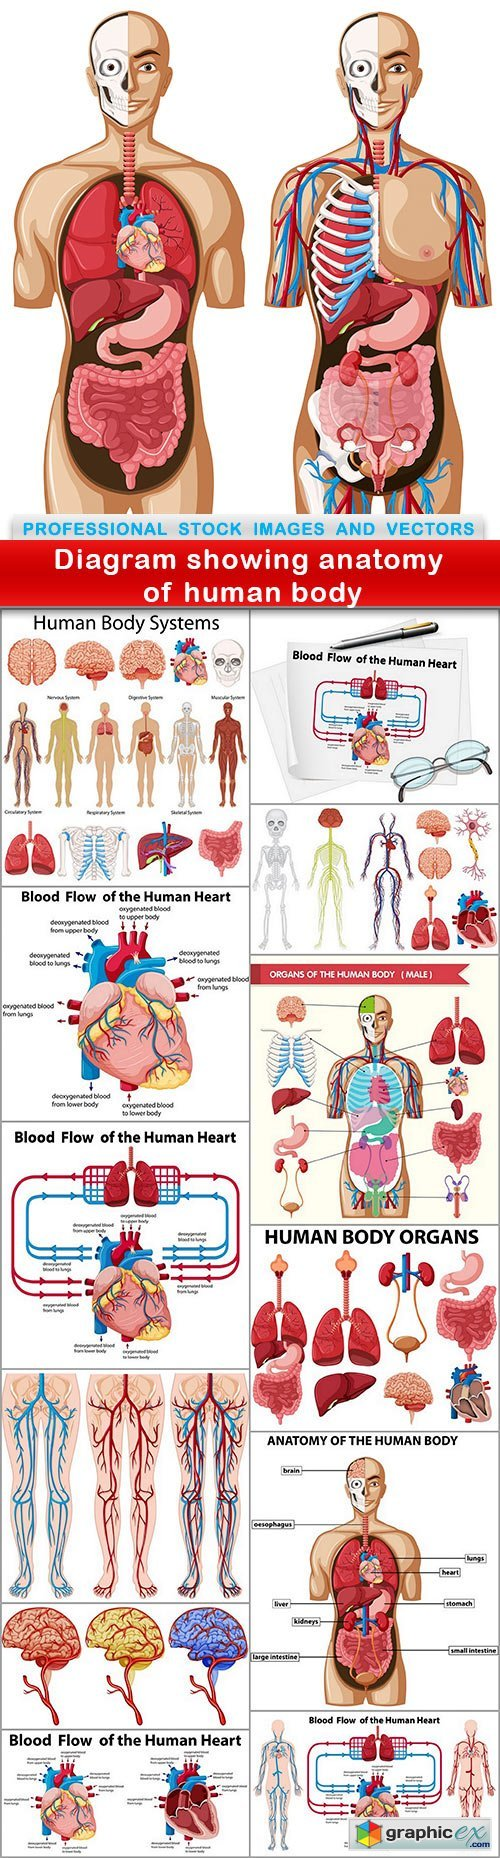 Diagram showing anatomy of human body - 13 EPS